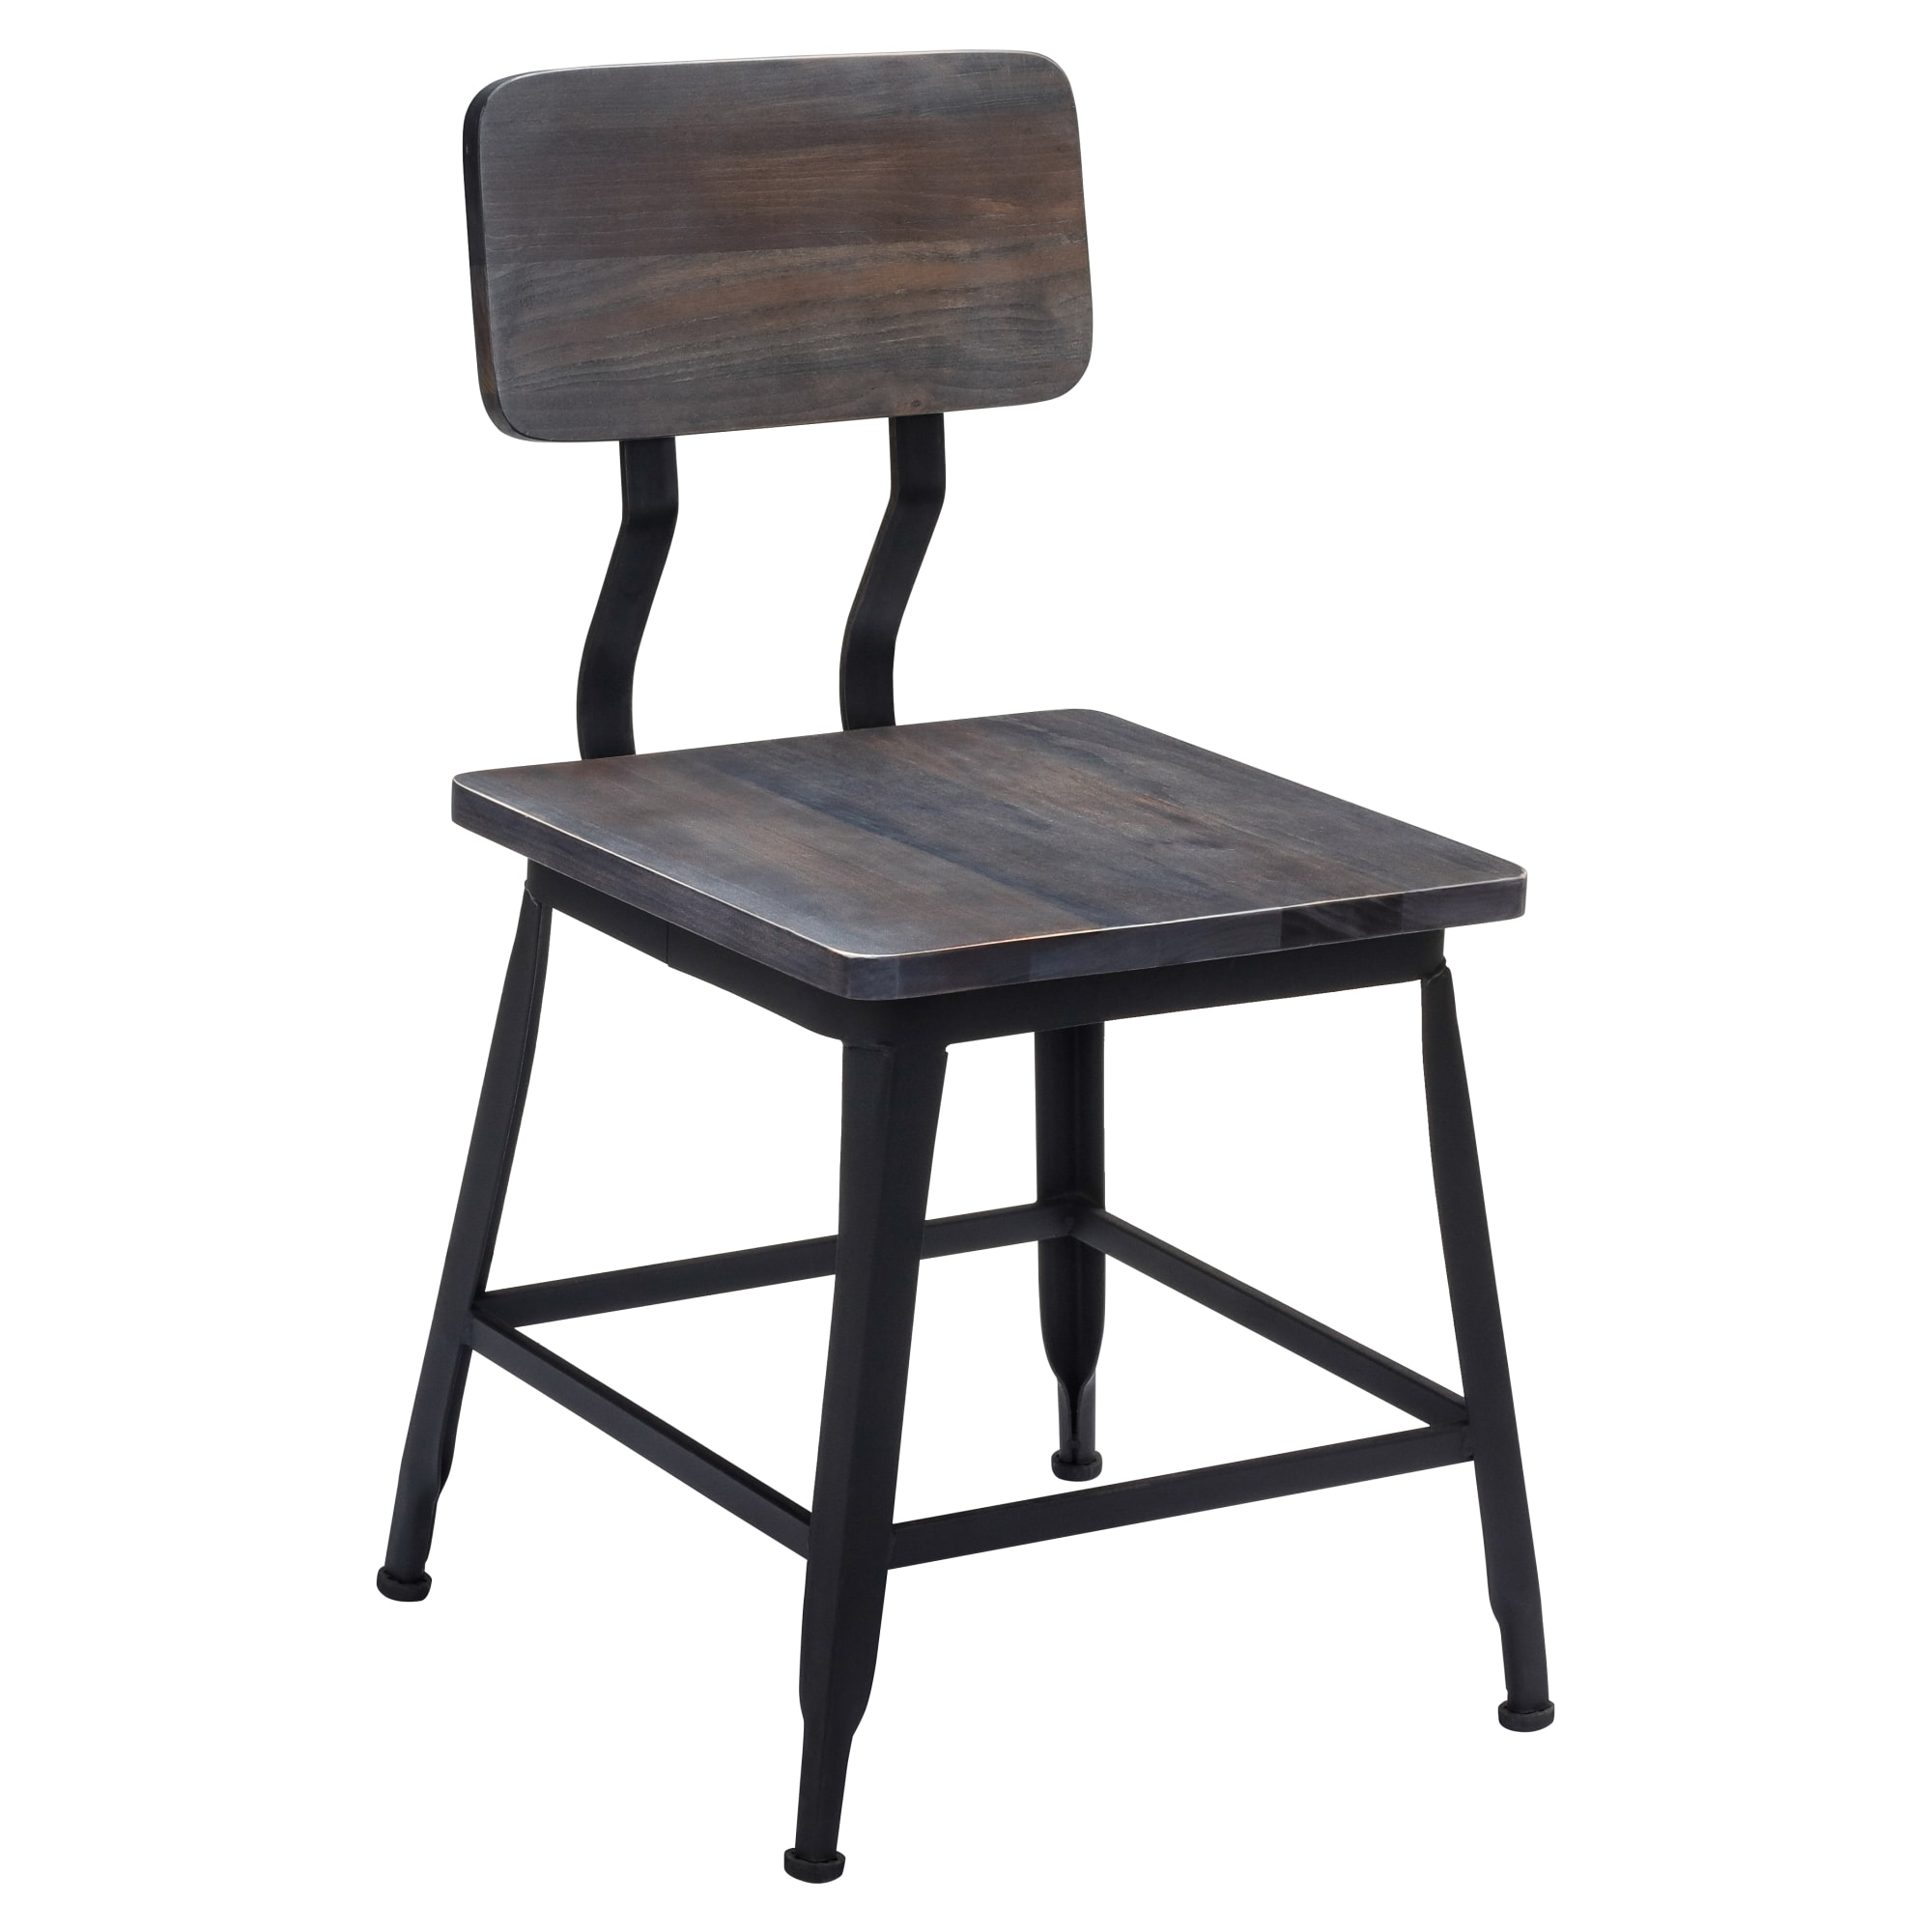 Black Industrial Style Metal Chair With Wood Back and Seat  with Black Industrial Style Metal Chair With Wood Back and Seat